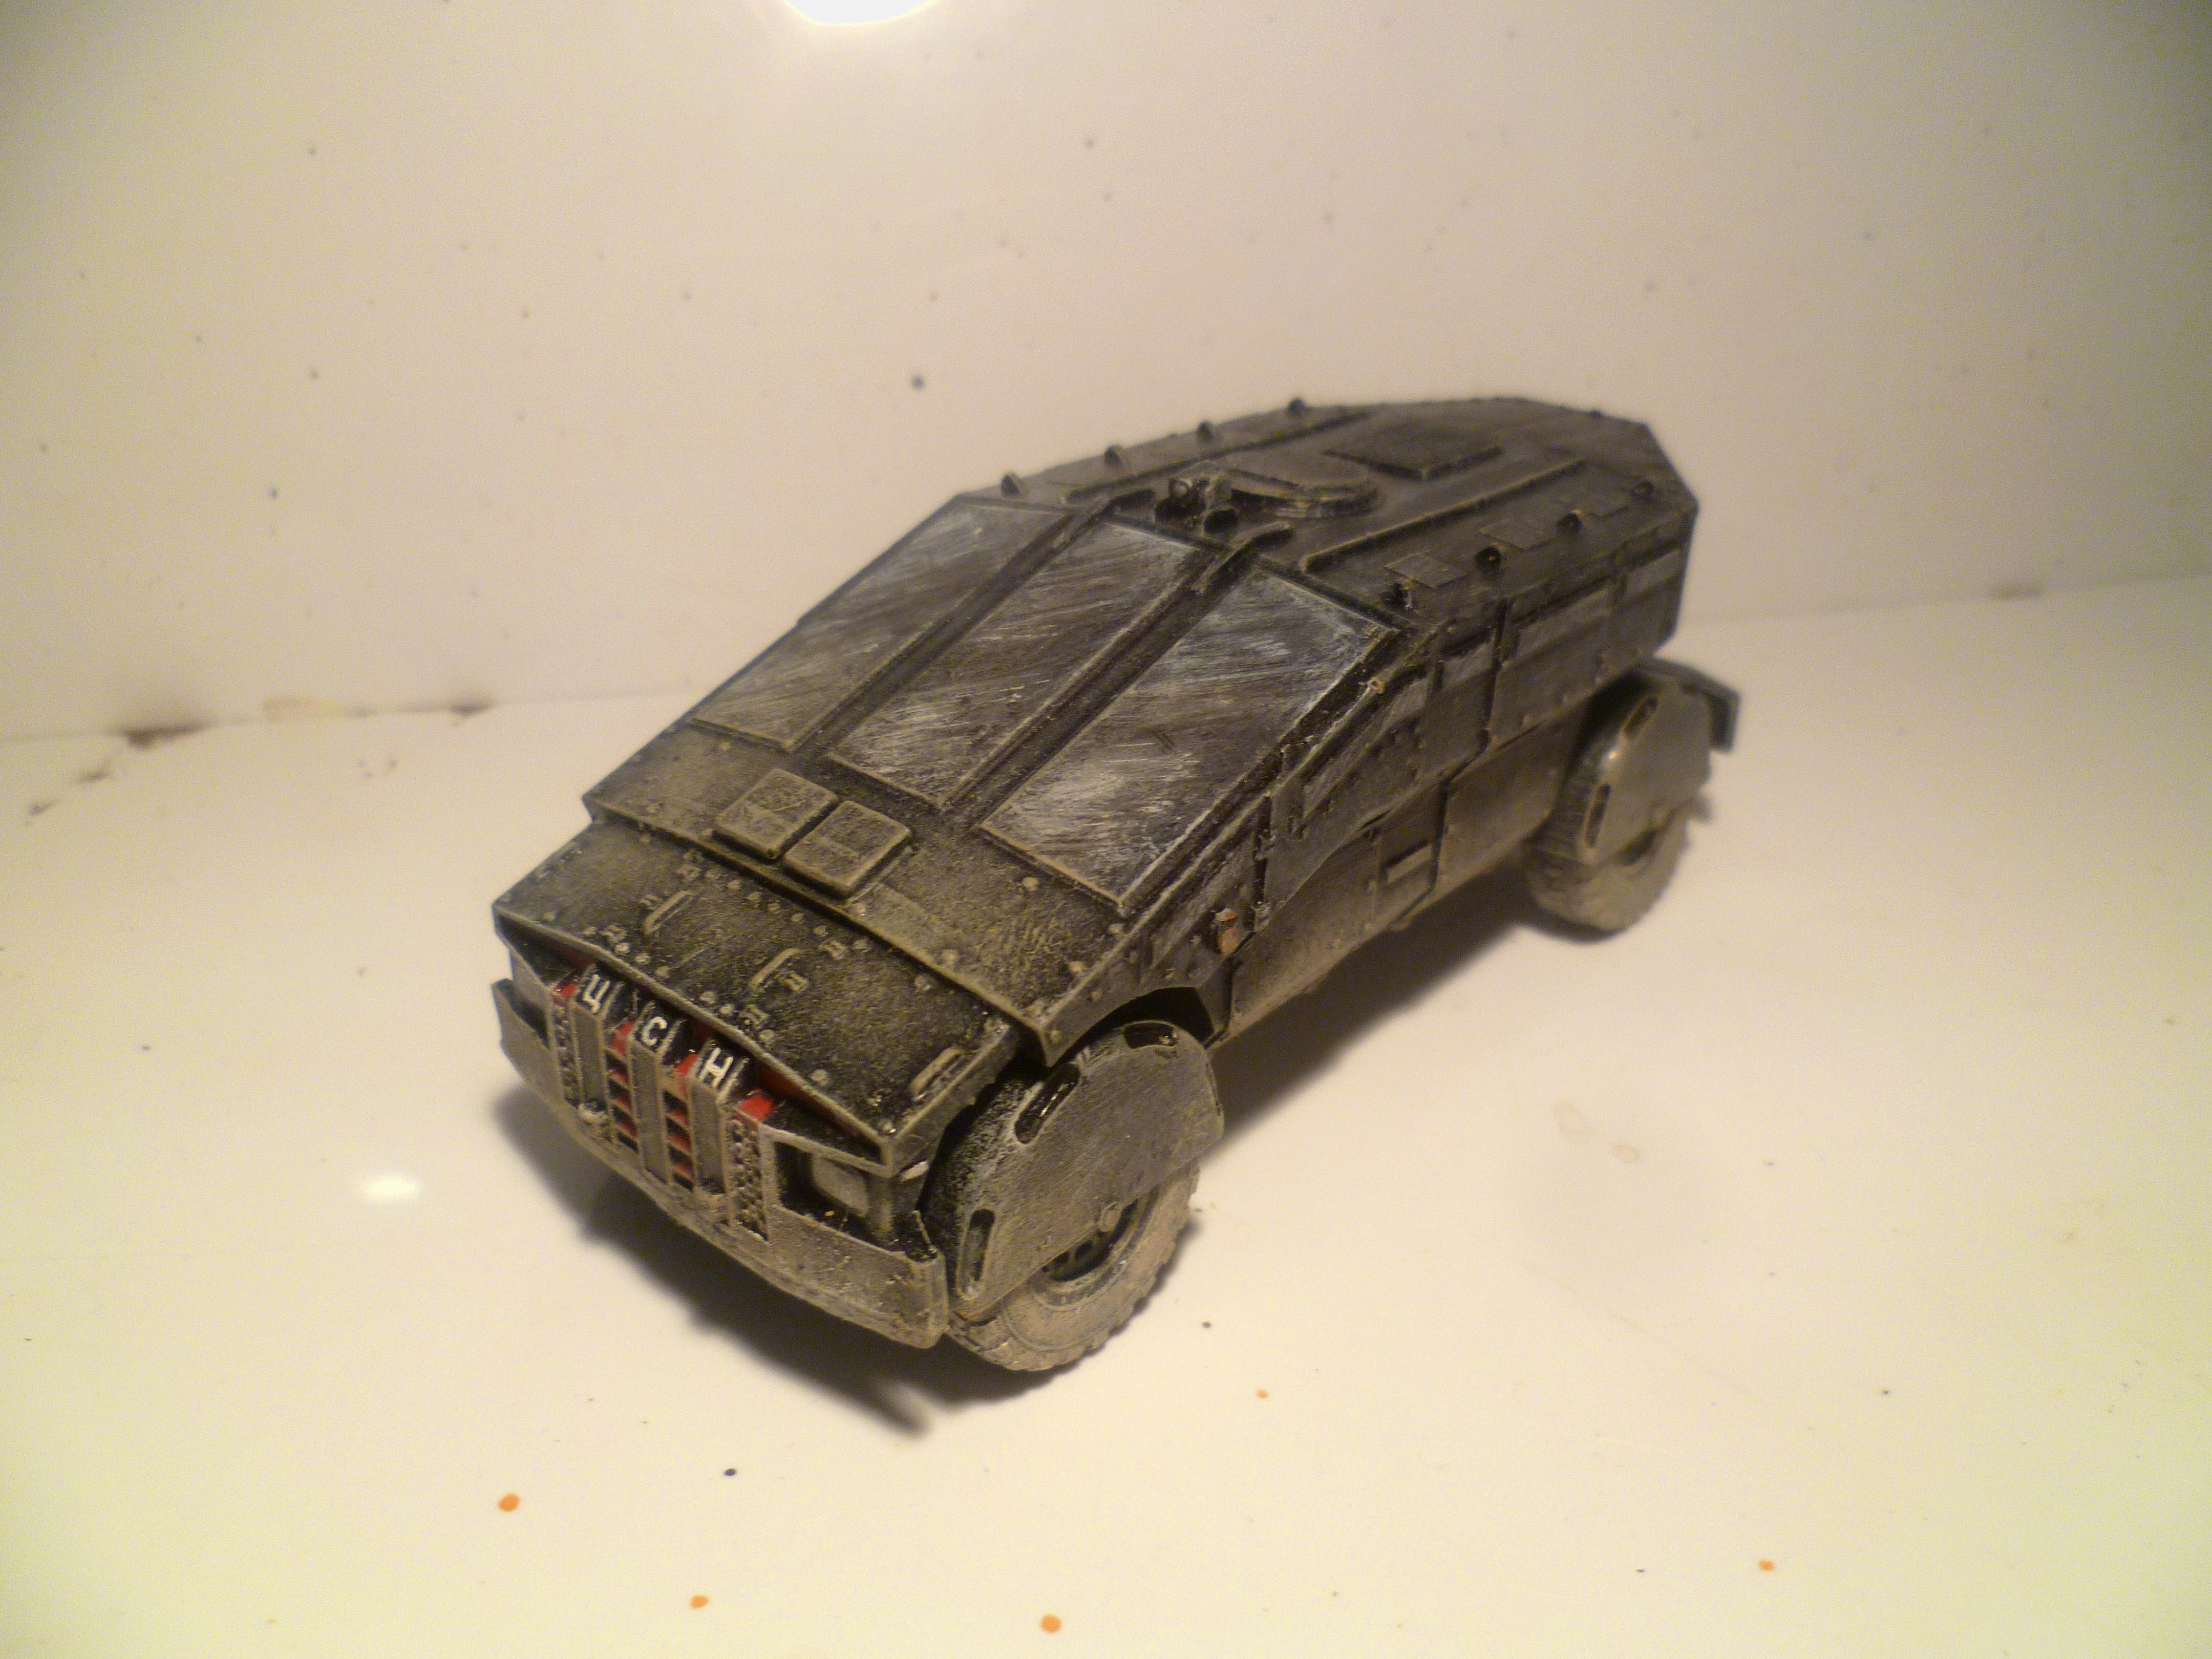 28mm, Arma, Armored Car, Eastern European, Falcatus, Fi, Ifrit, Modern, Punisher, Russians, Sci, Ukrainian, Vehicle, Zil